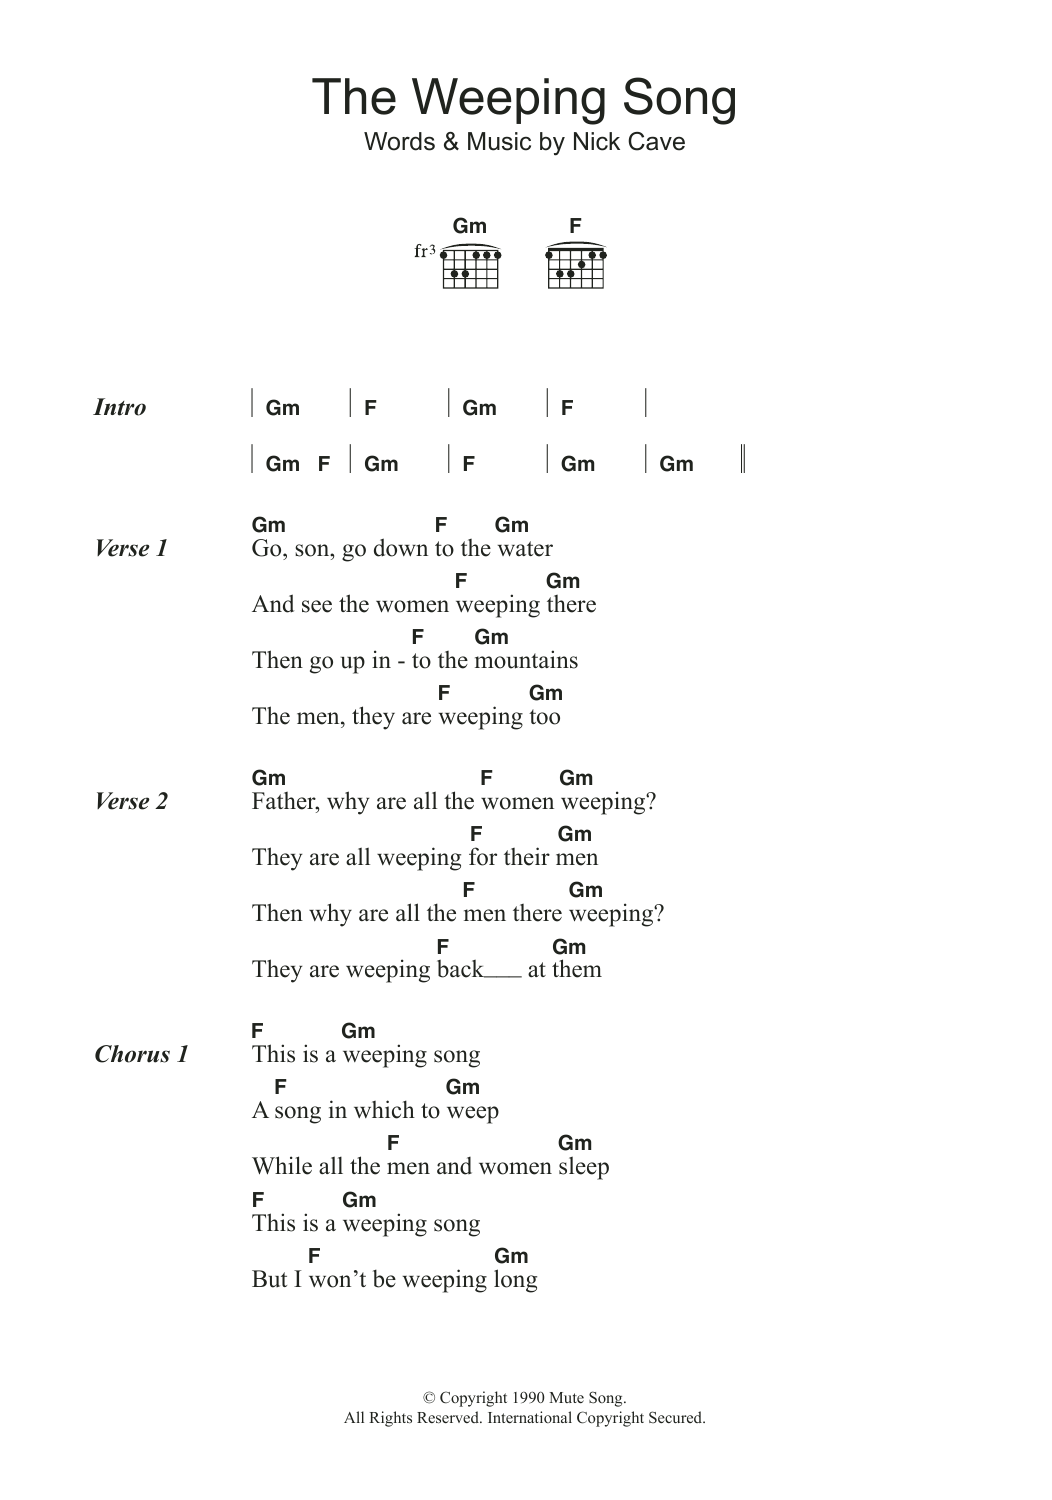 The Weeping Song by Nick Cave   Guitar Chords/Lyrics   Guitar ...